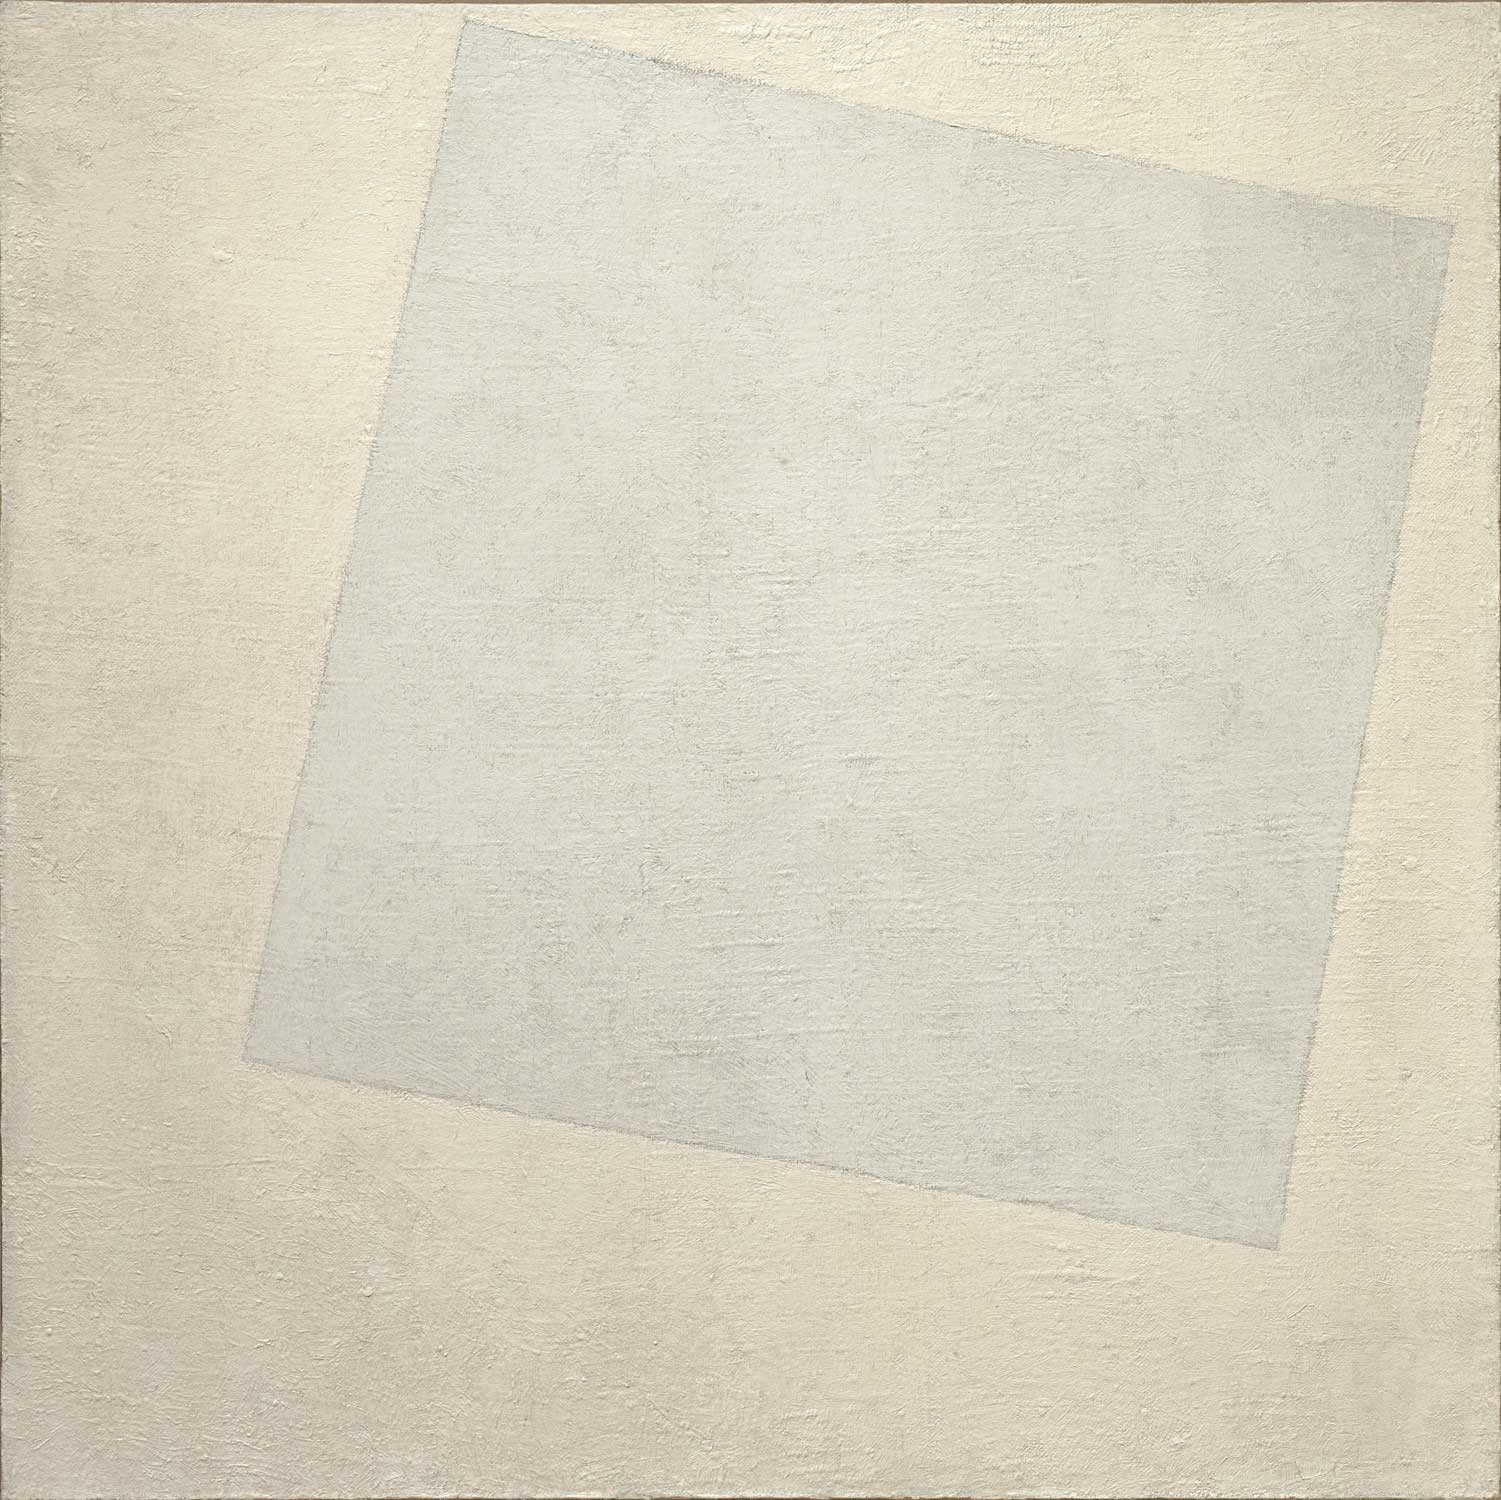 Kazimir Malevich Suprematist Composition: White on White 1918 (Image: moma.org)